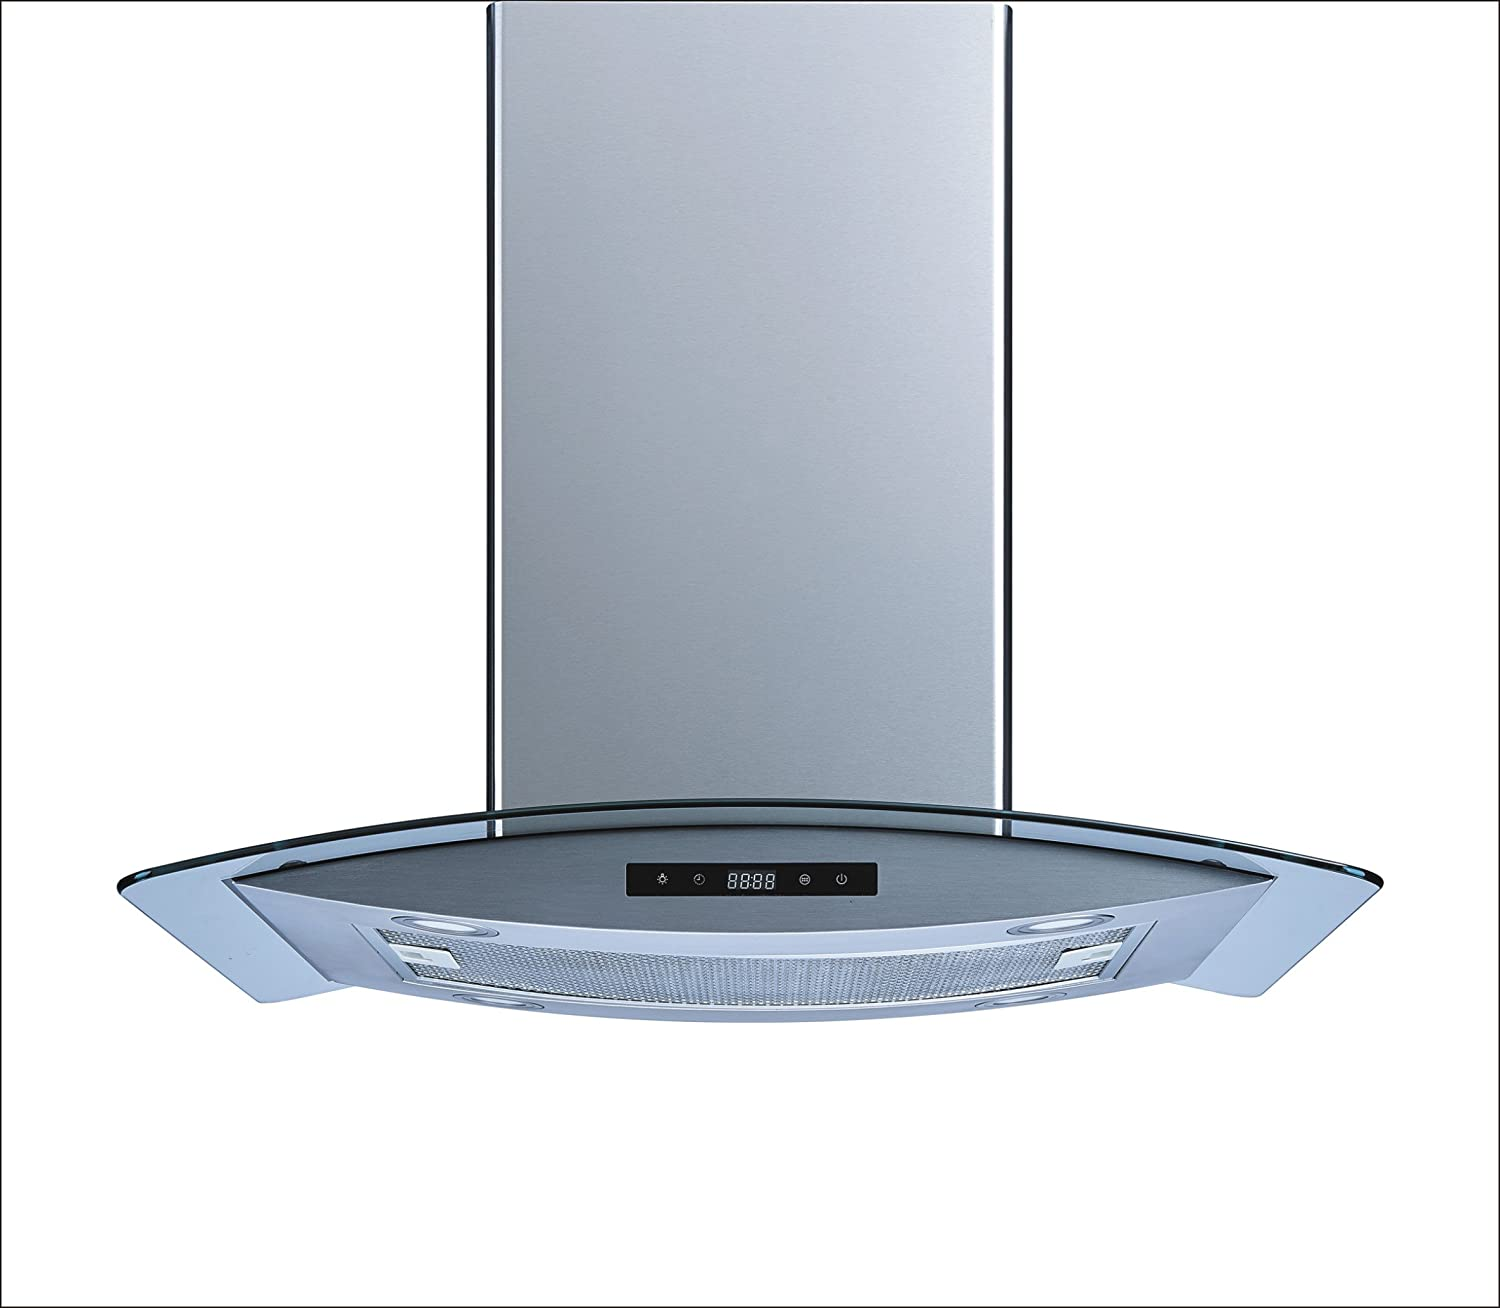 "Winflo 30"" Island Stainless Steel/Arched Tempered Glass Ducted/Ductless Kitchen Range Hood with 450 CFM Air Flow LED Display Touch Control Included Dishwasher-Safe Aluminum Filter and 4x2W LED Lights"